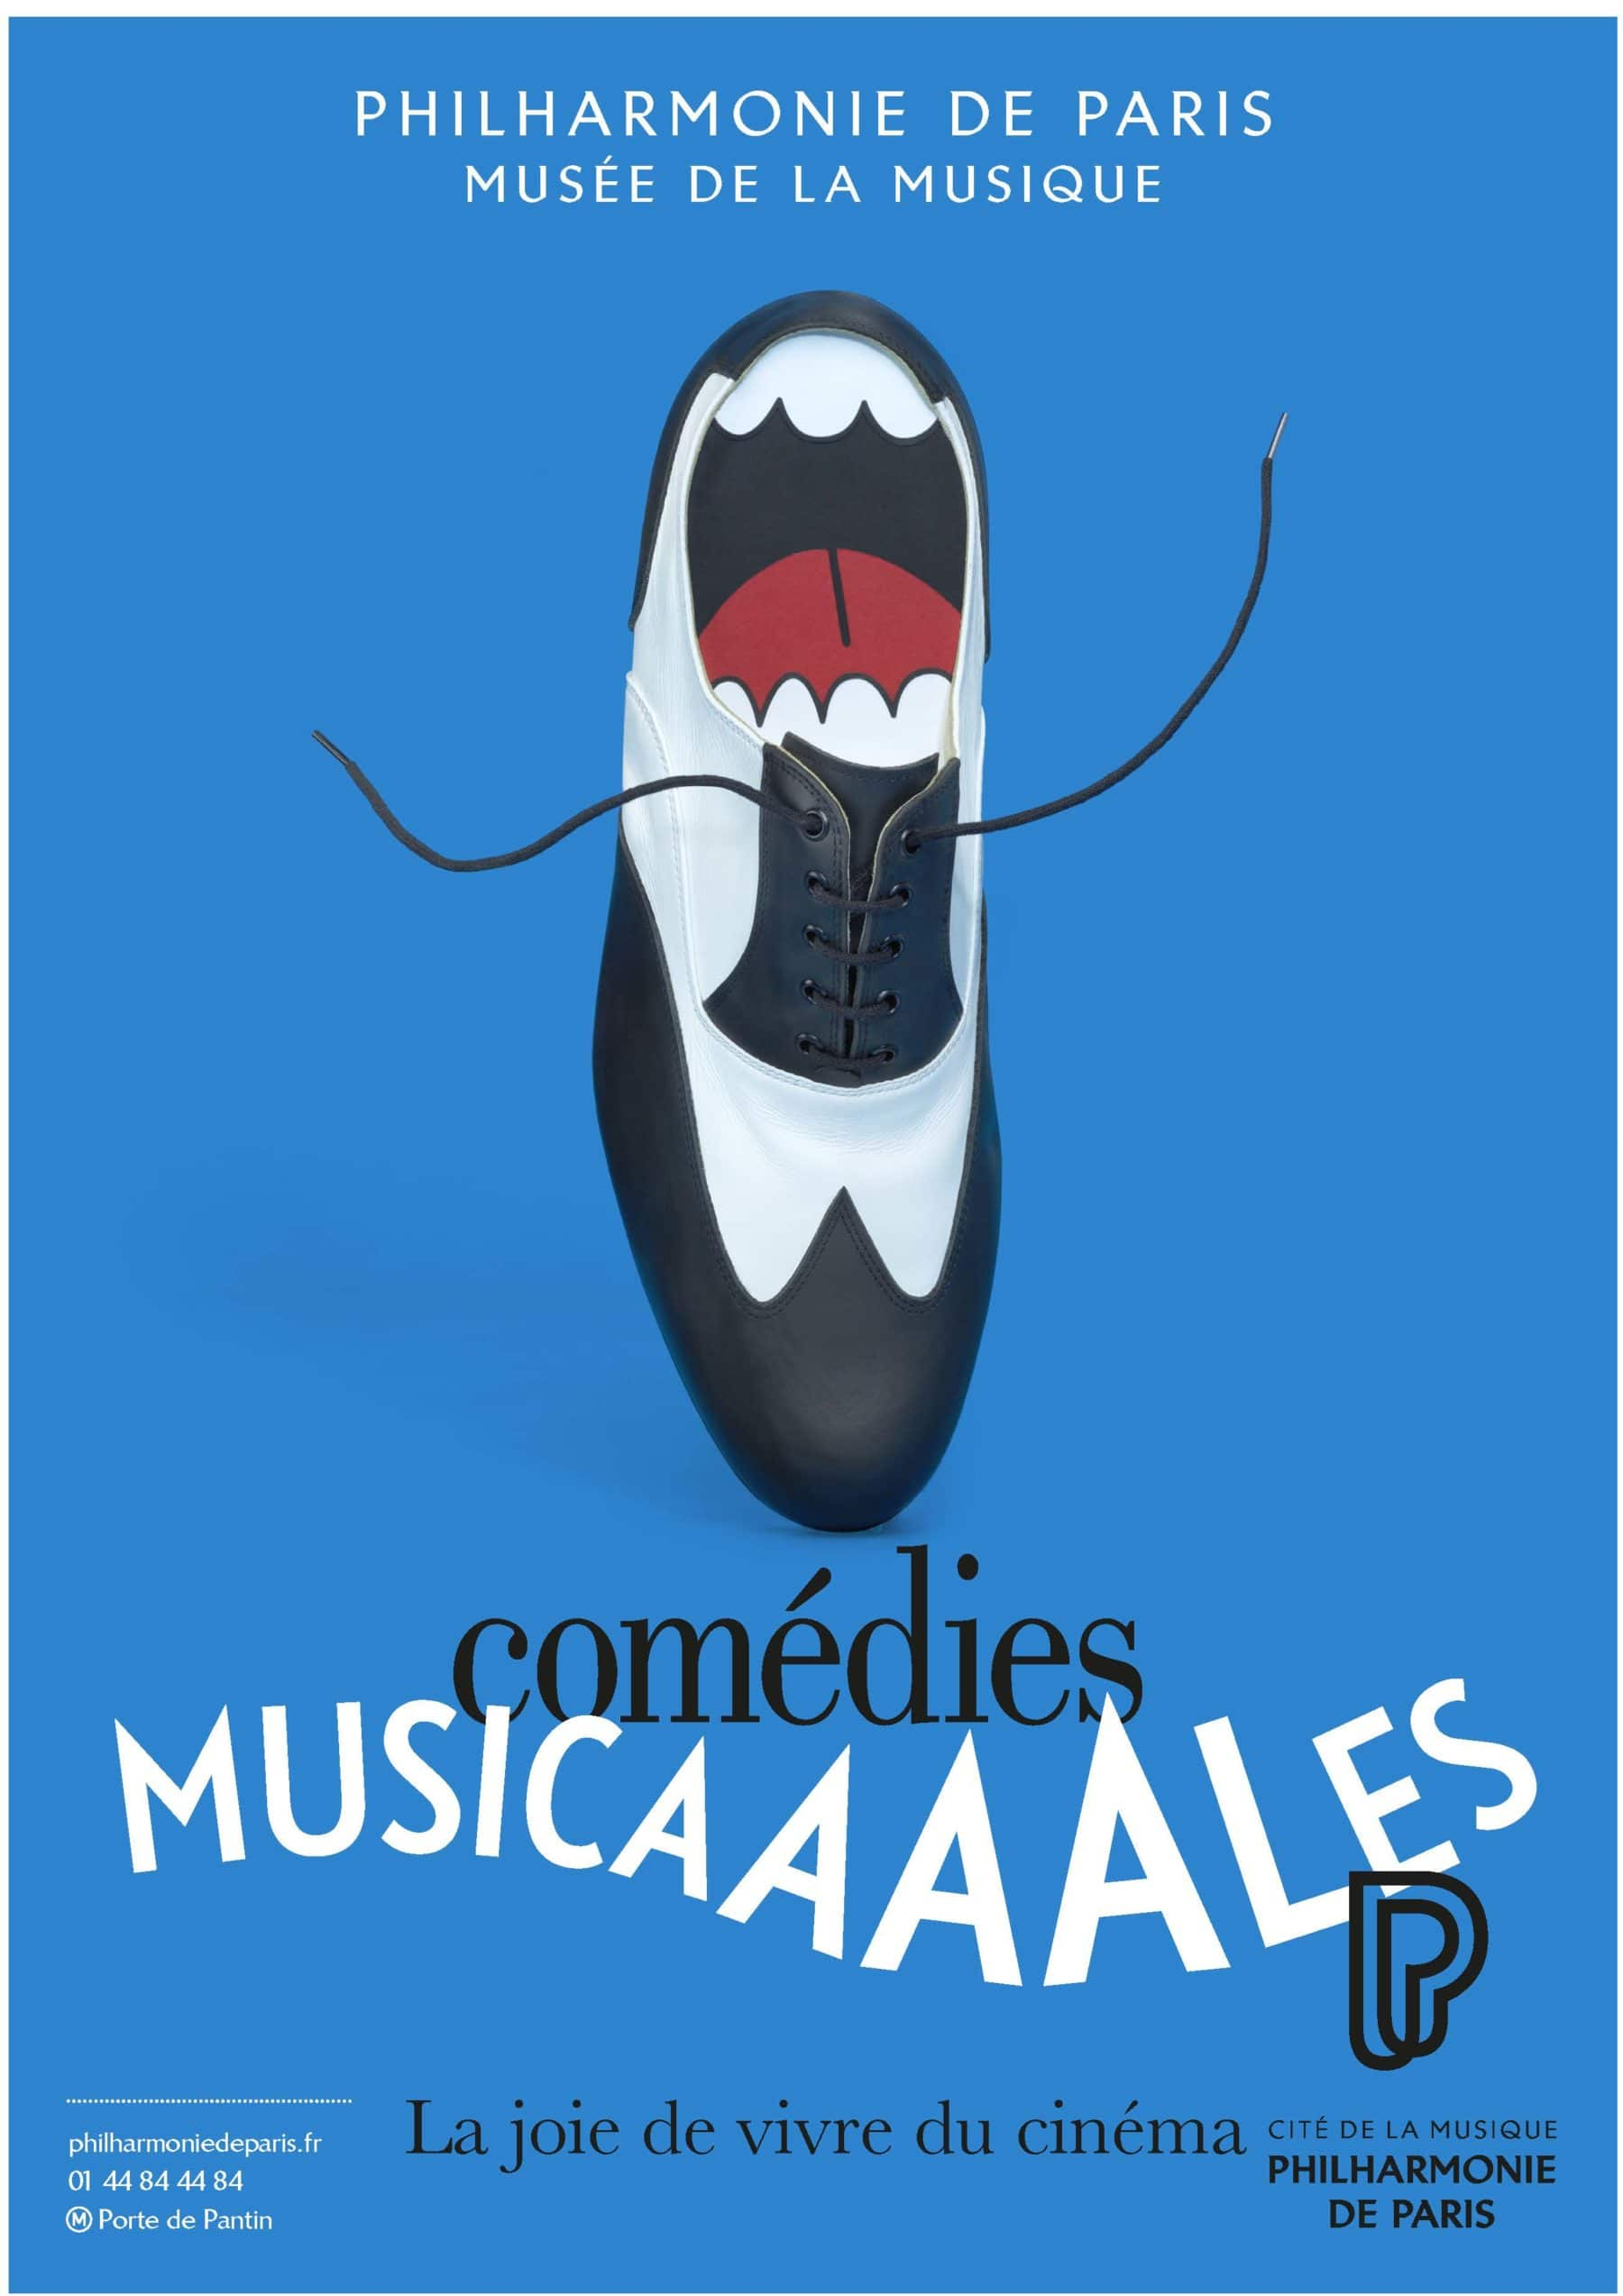 Musicals : A glorious feeling